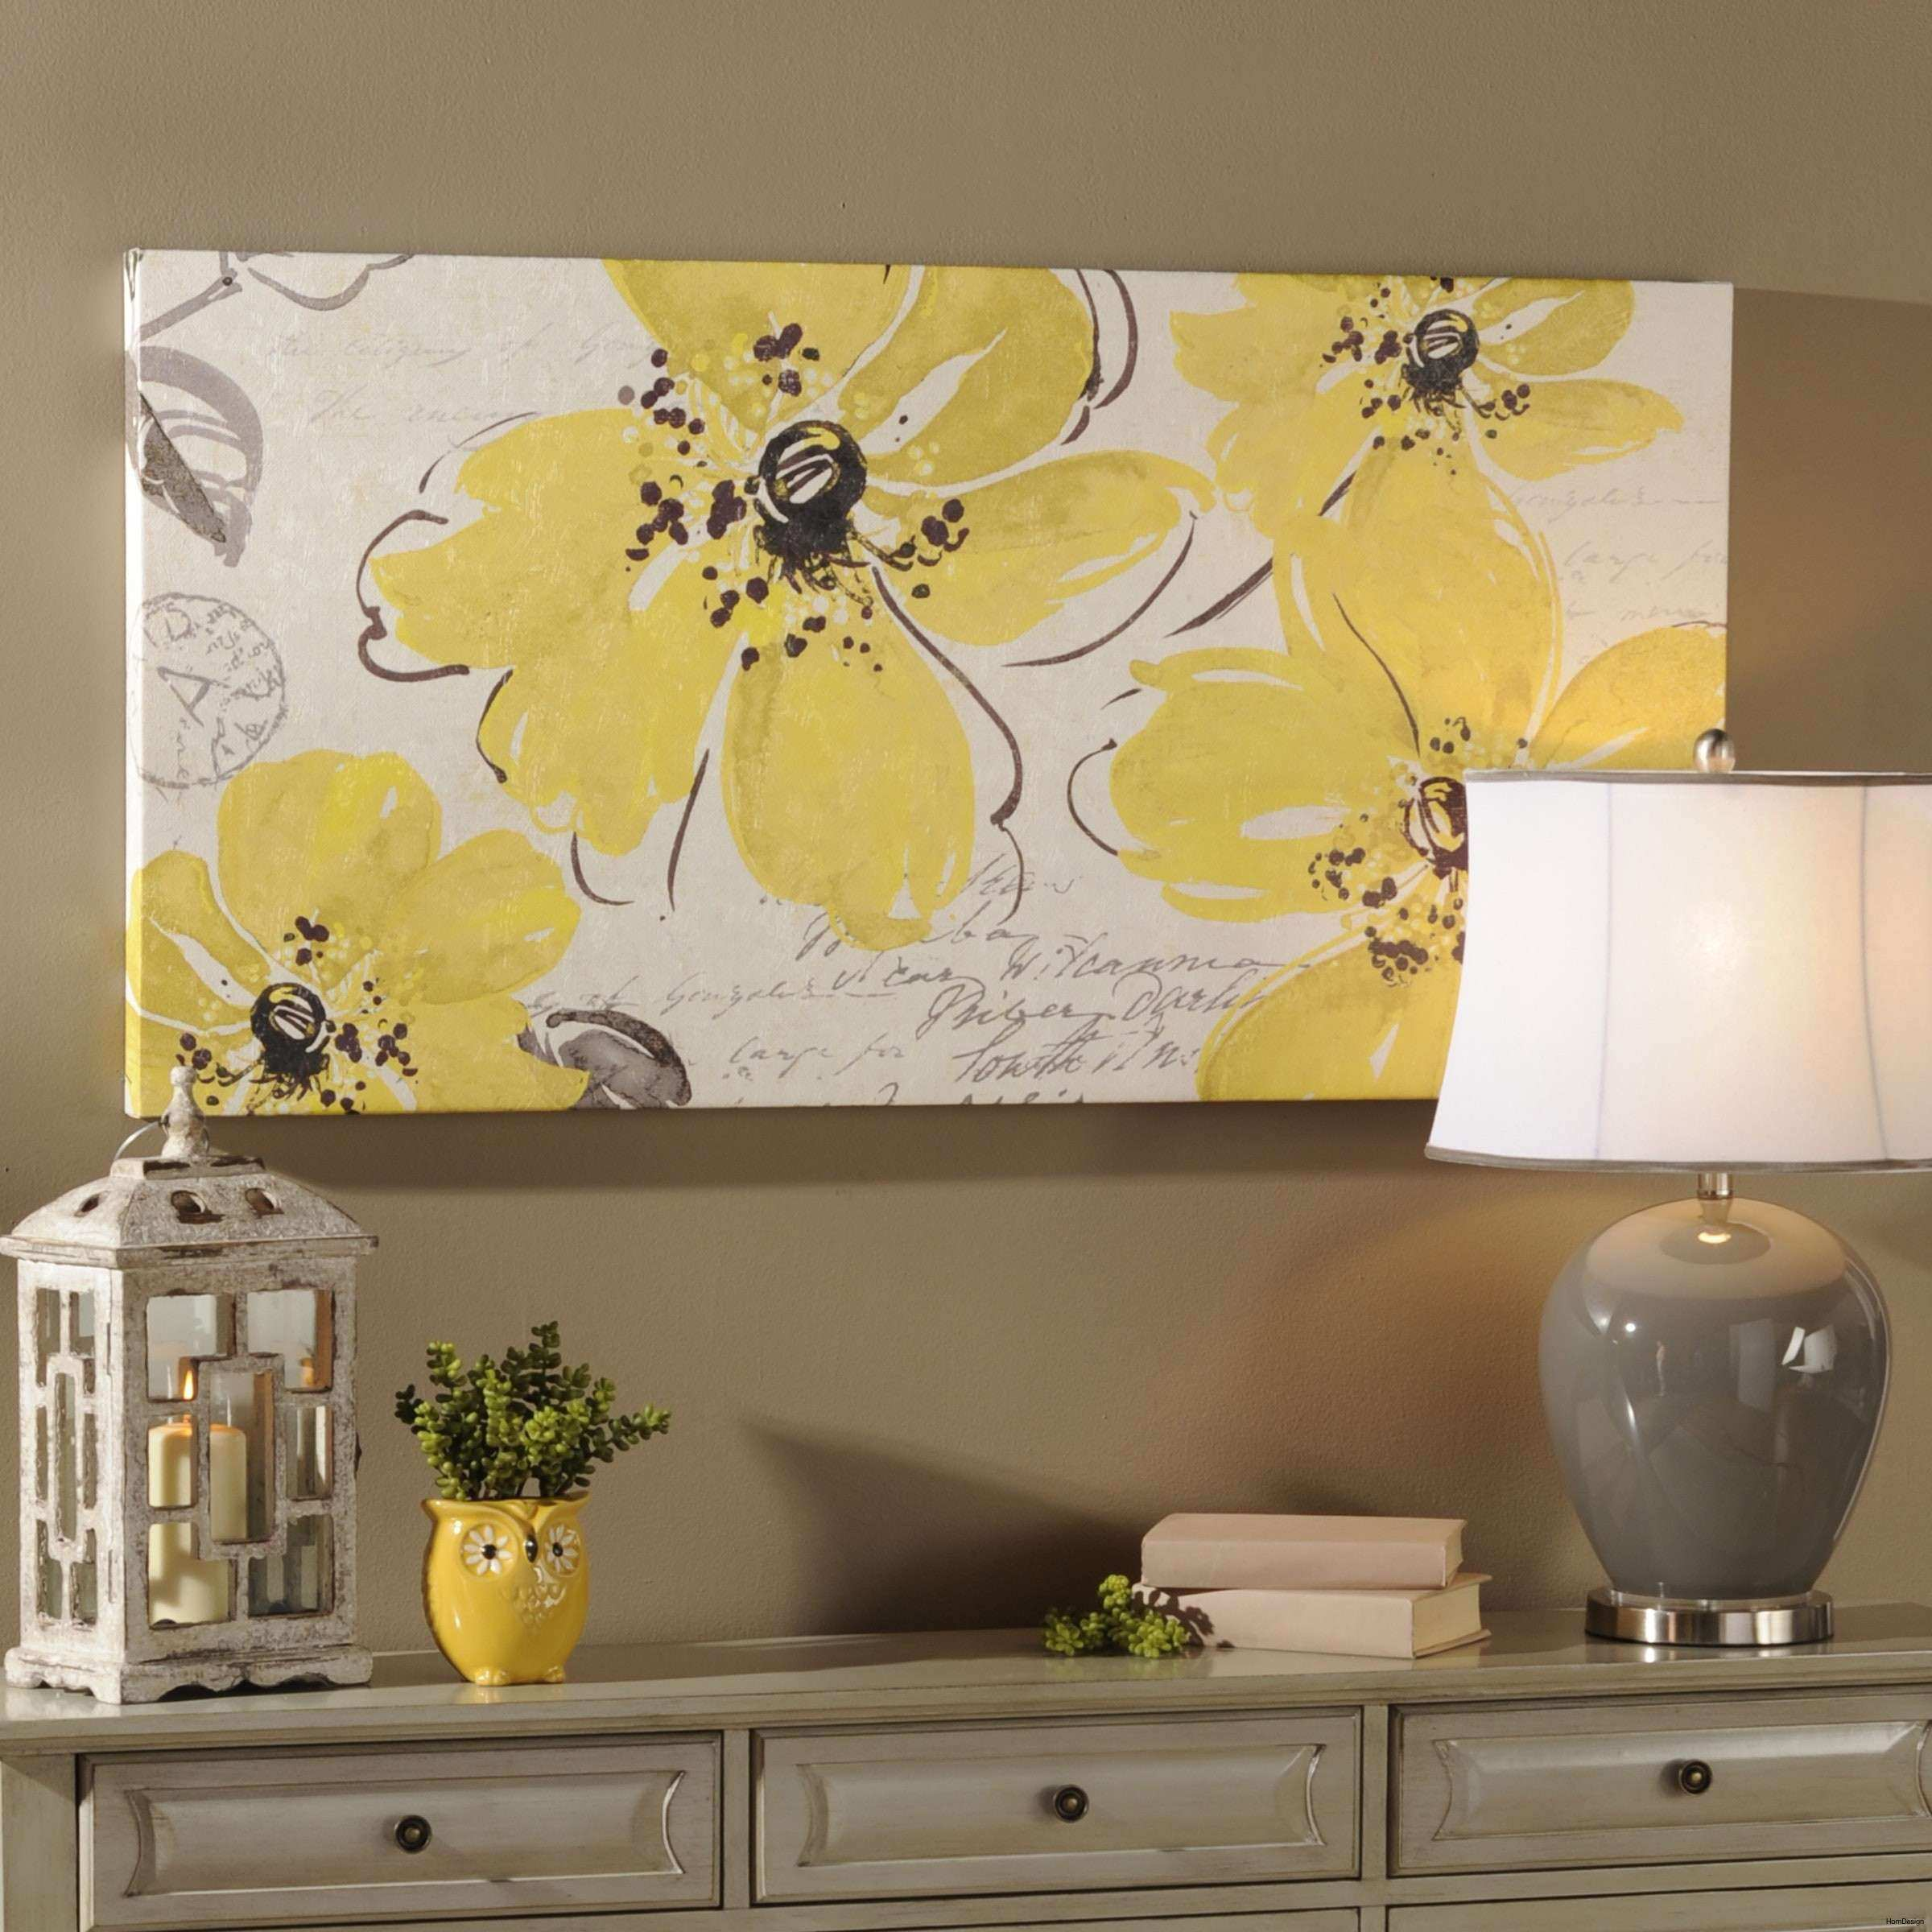 32 Fresh Decorative Painting Ideas for Walls